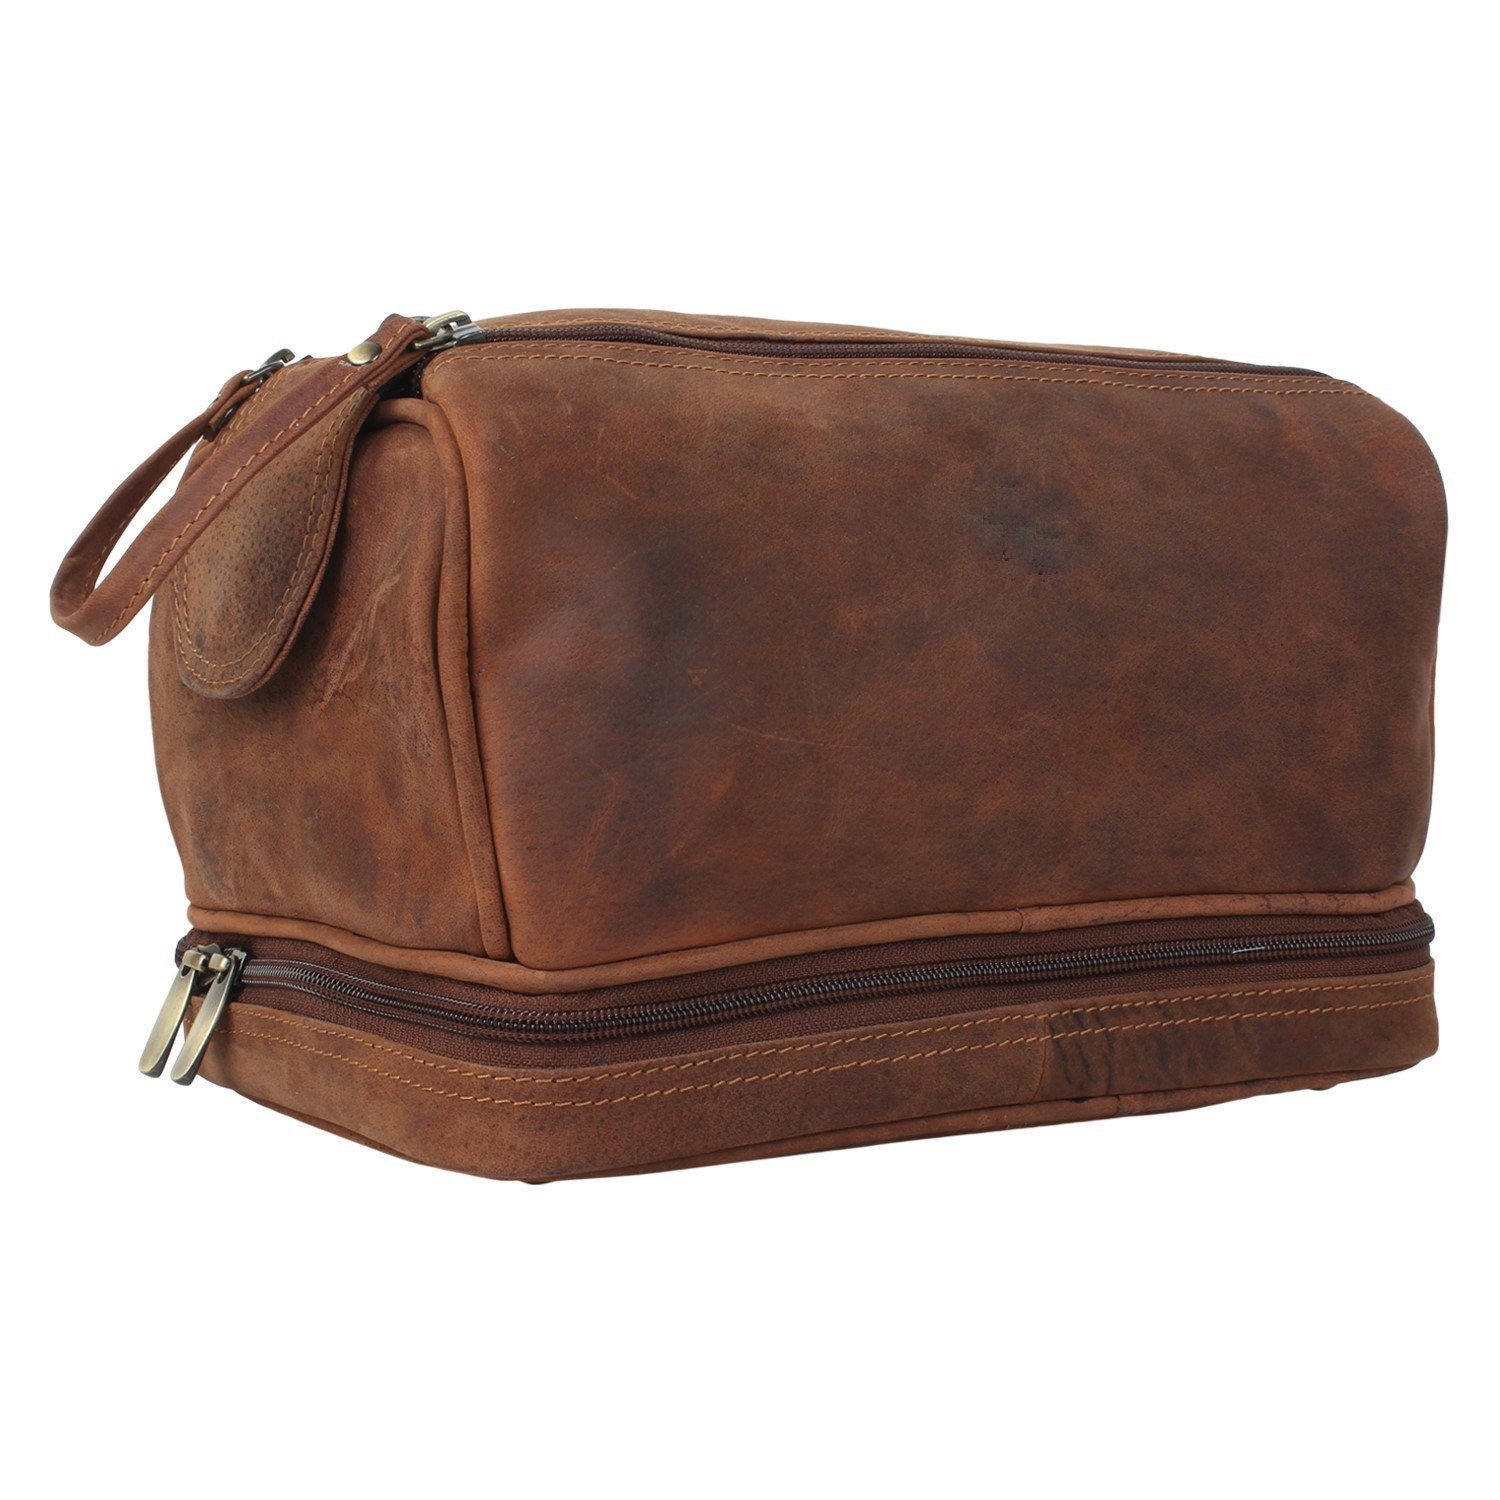 dopp kit shaving bags for men leather travel toiletry bag  932a0cc8e2c20